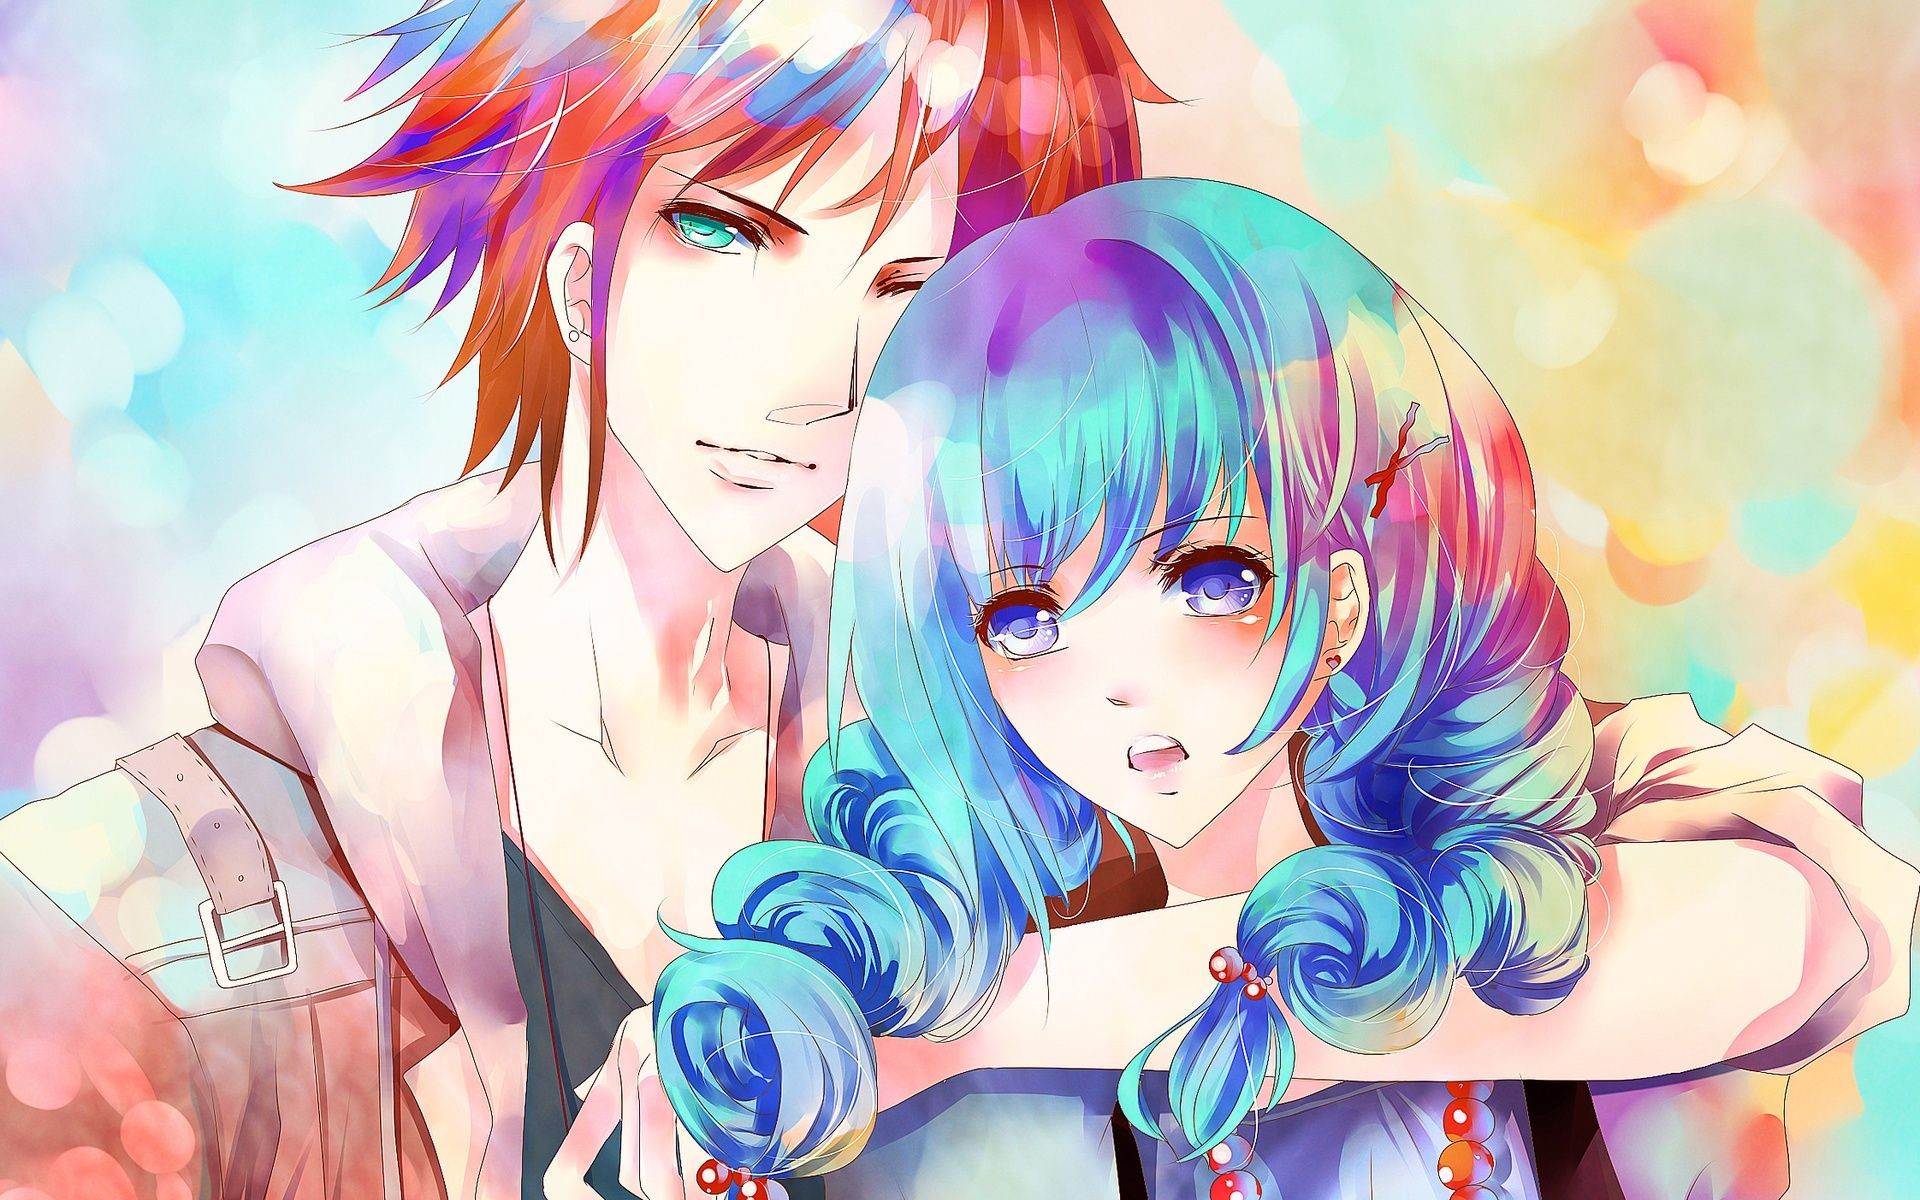 Res: 1920x1200, Anime Girl And Boy Wallpaper #W5l